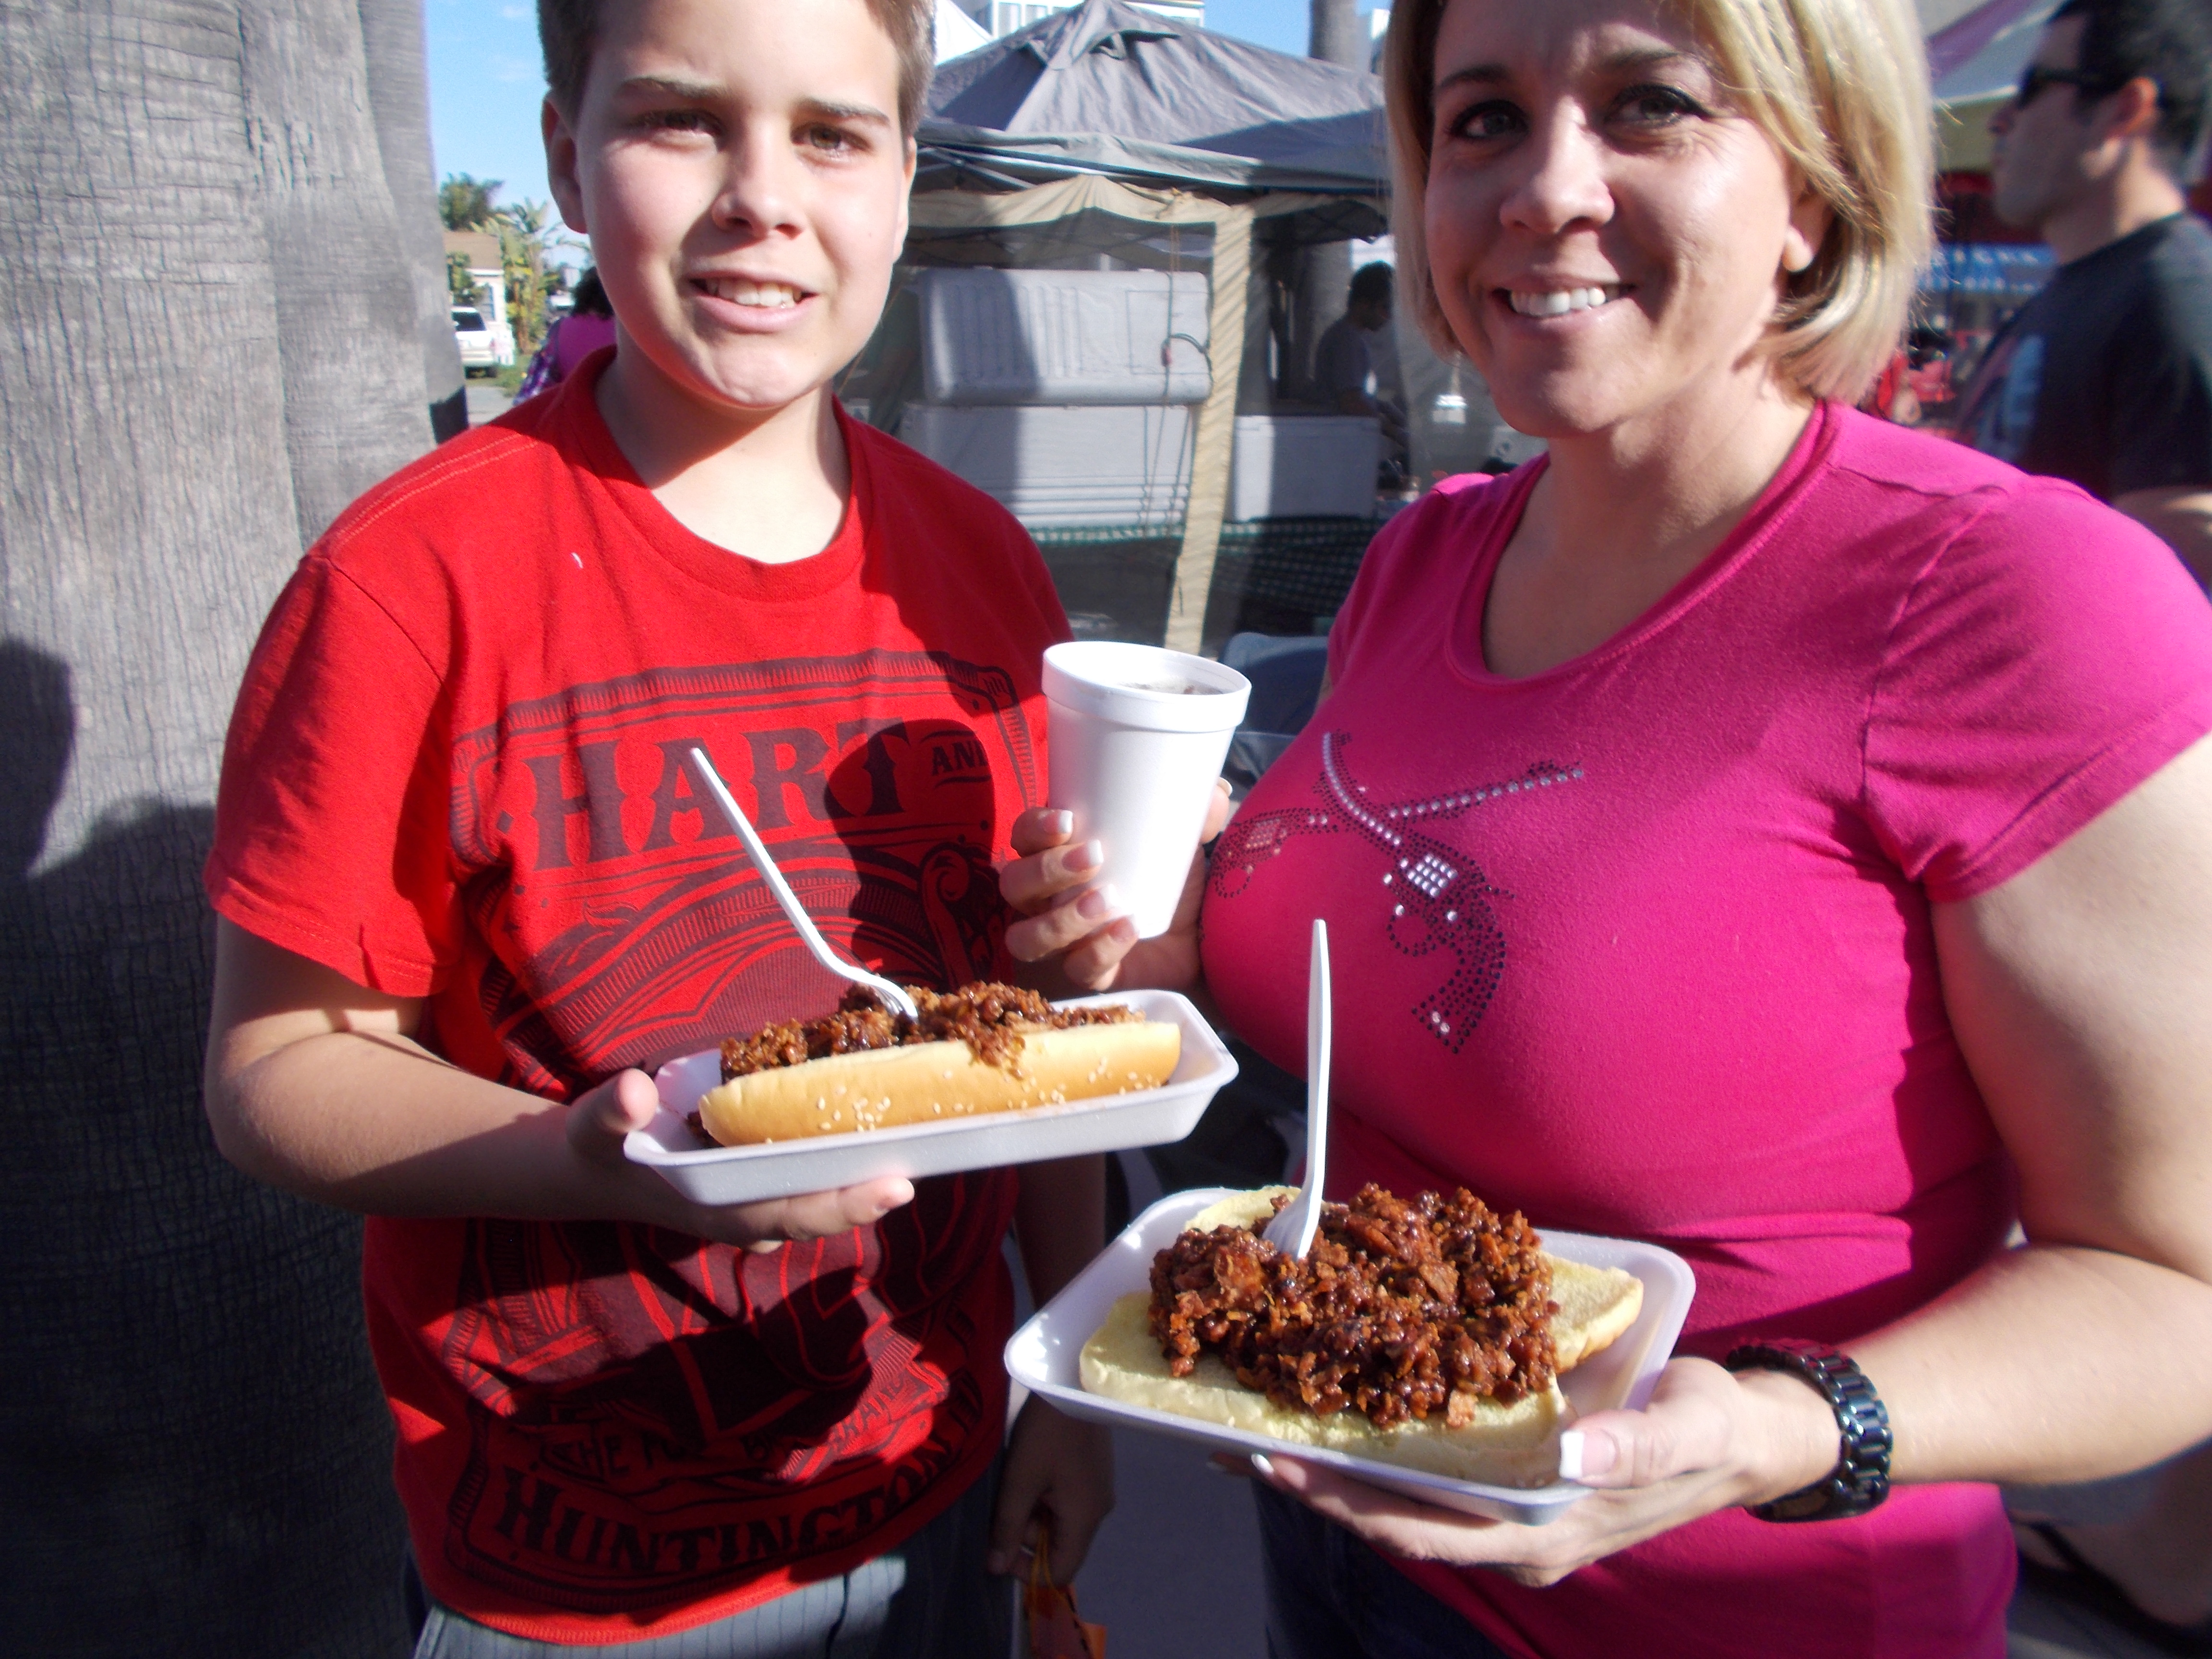 Sharee and son Zach with their pulled pork sandwiches